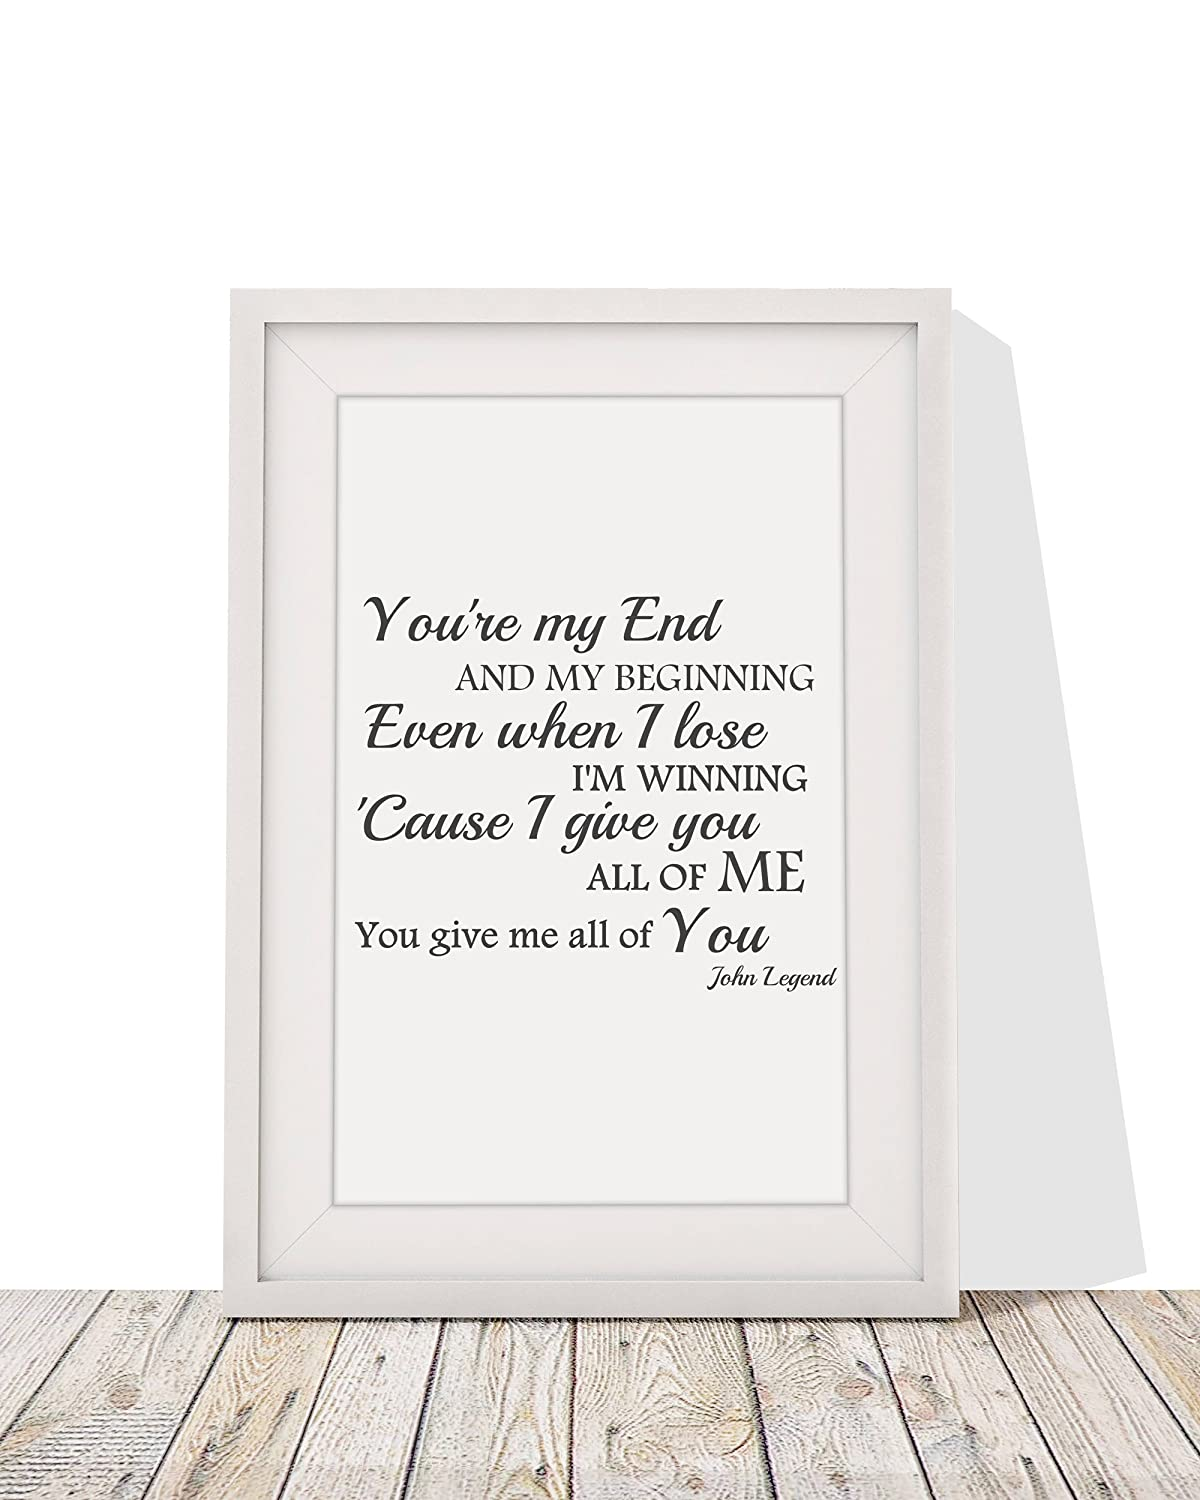 Four Leaf Clover Gift Shop John Legend All Of Me Song Lyrics Gift ...